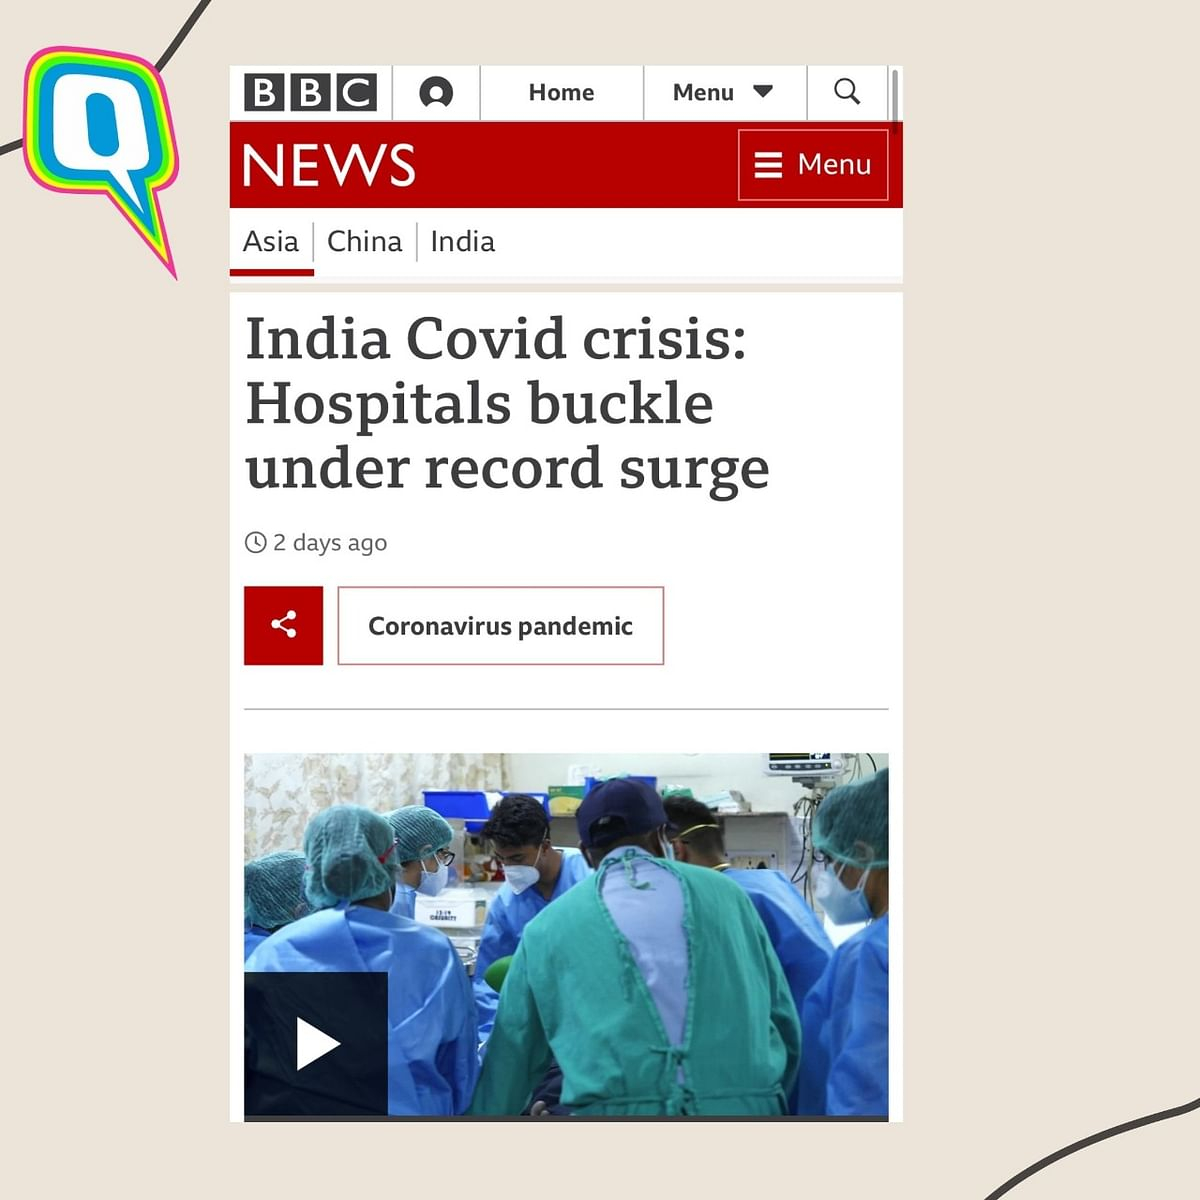 How the World Sees India and Its COVID Crisis